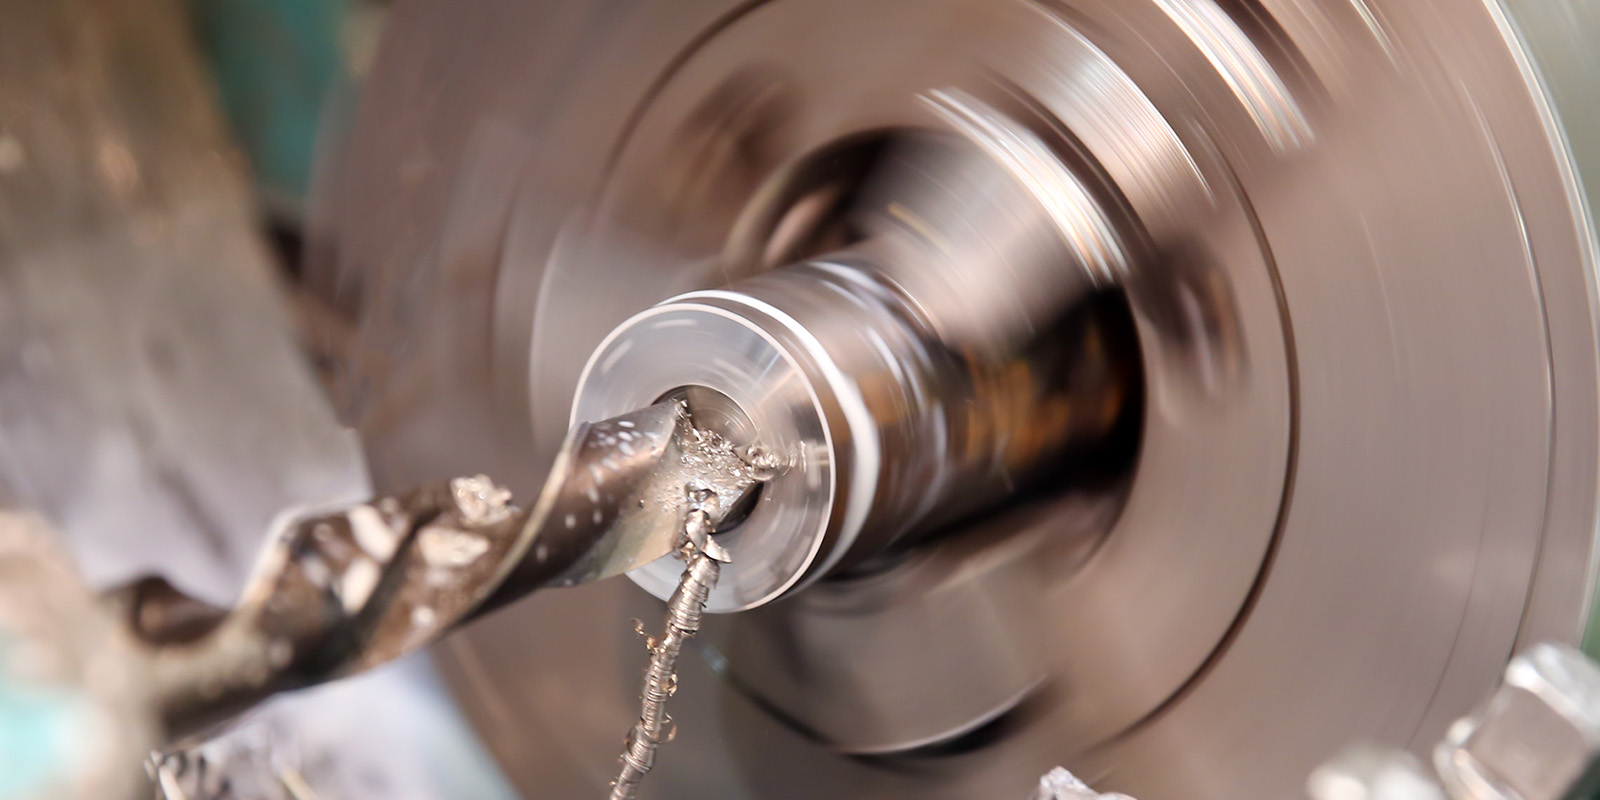 Metalworking Industry: Workpiece Drilling On A Lathe Machine